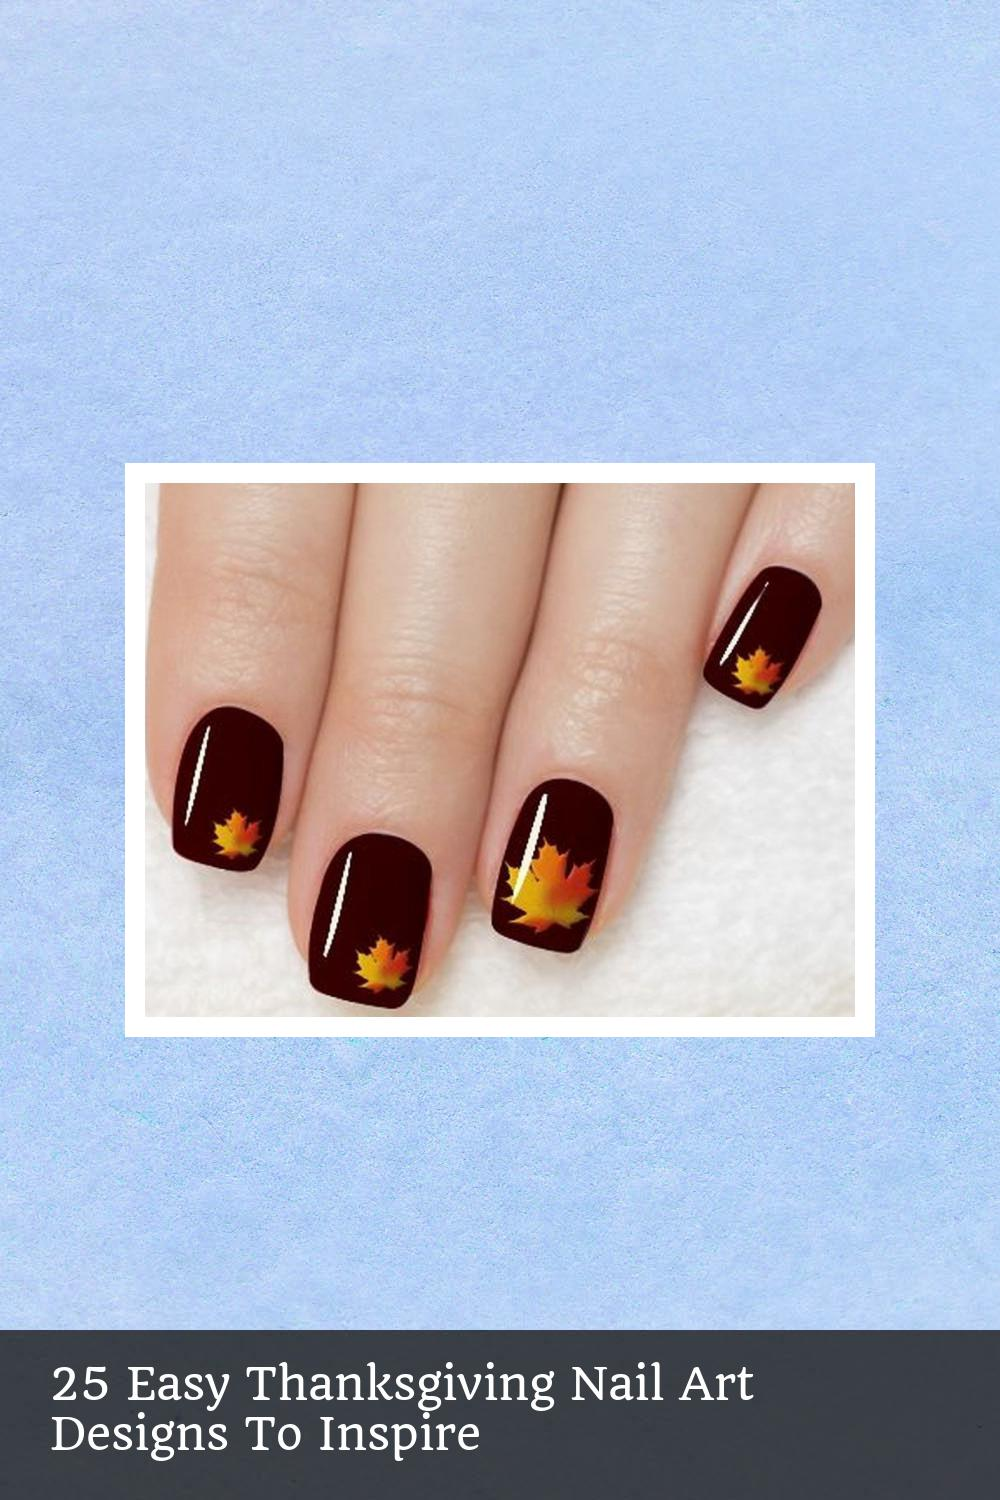 25 Easy Thanksgiving Nail Art Designs To Inspire 1